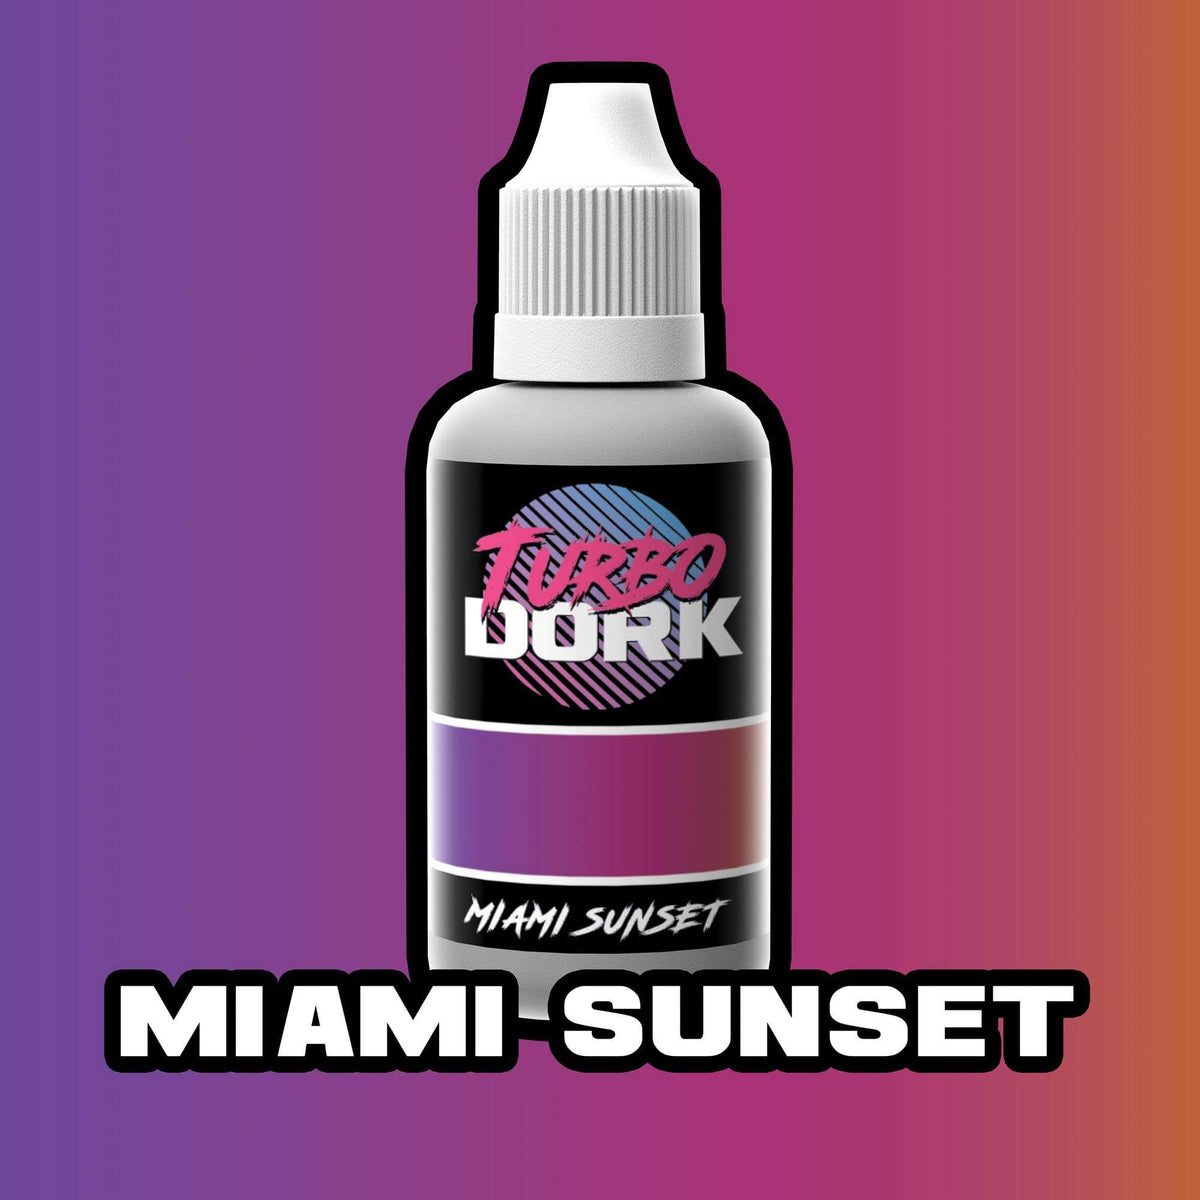 Miami Sunset Colorshift Acrylic Paint